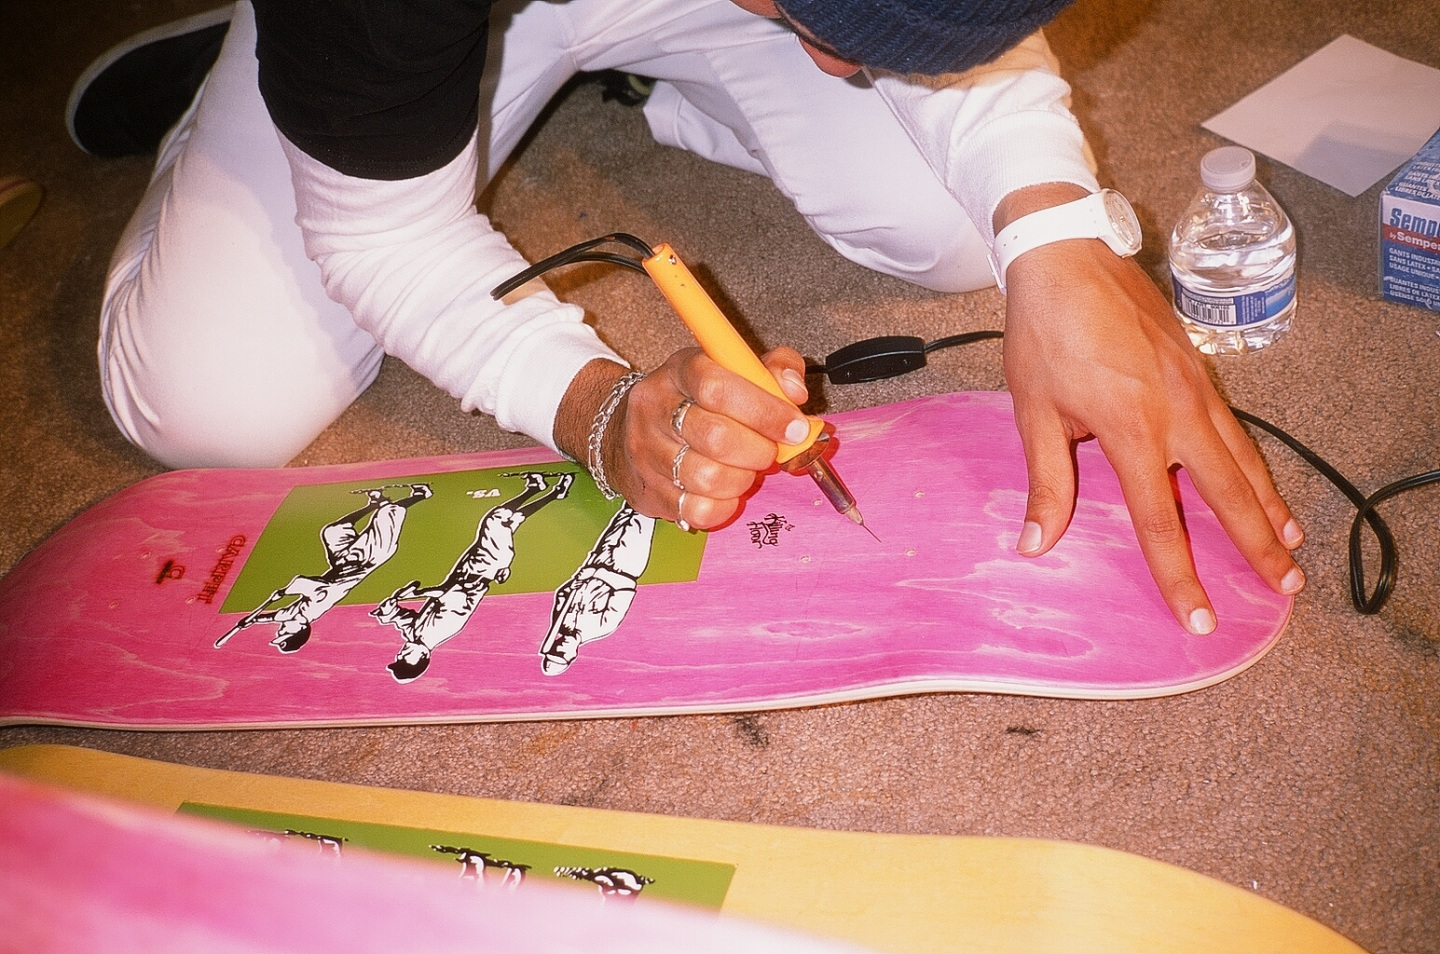 For Carpet Company, every skateboard tells a story